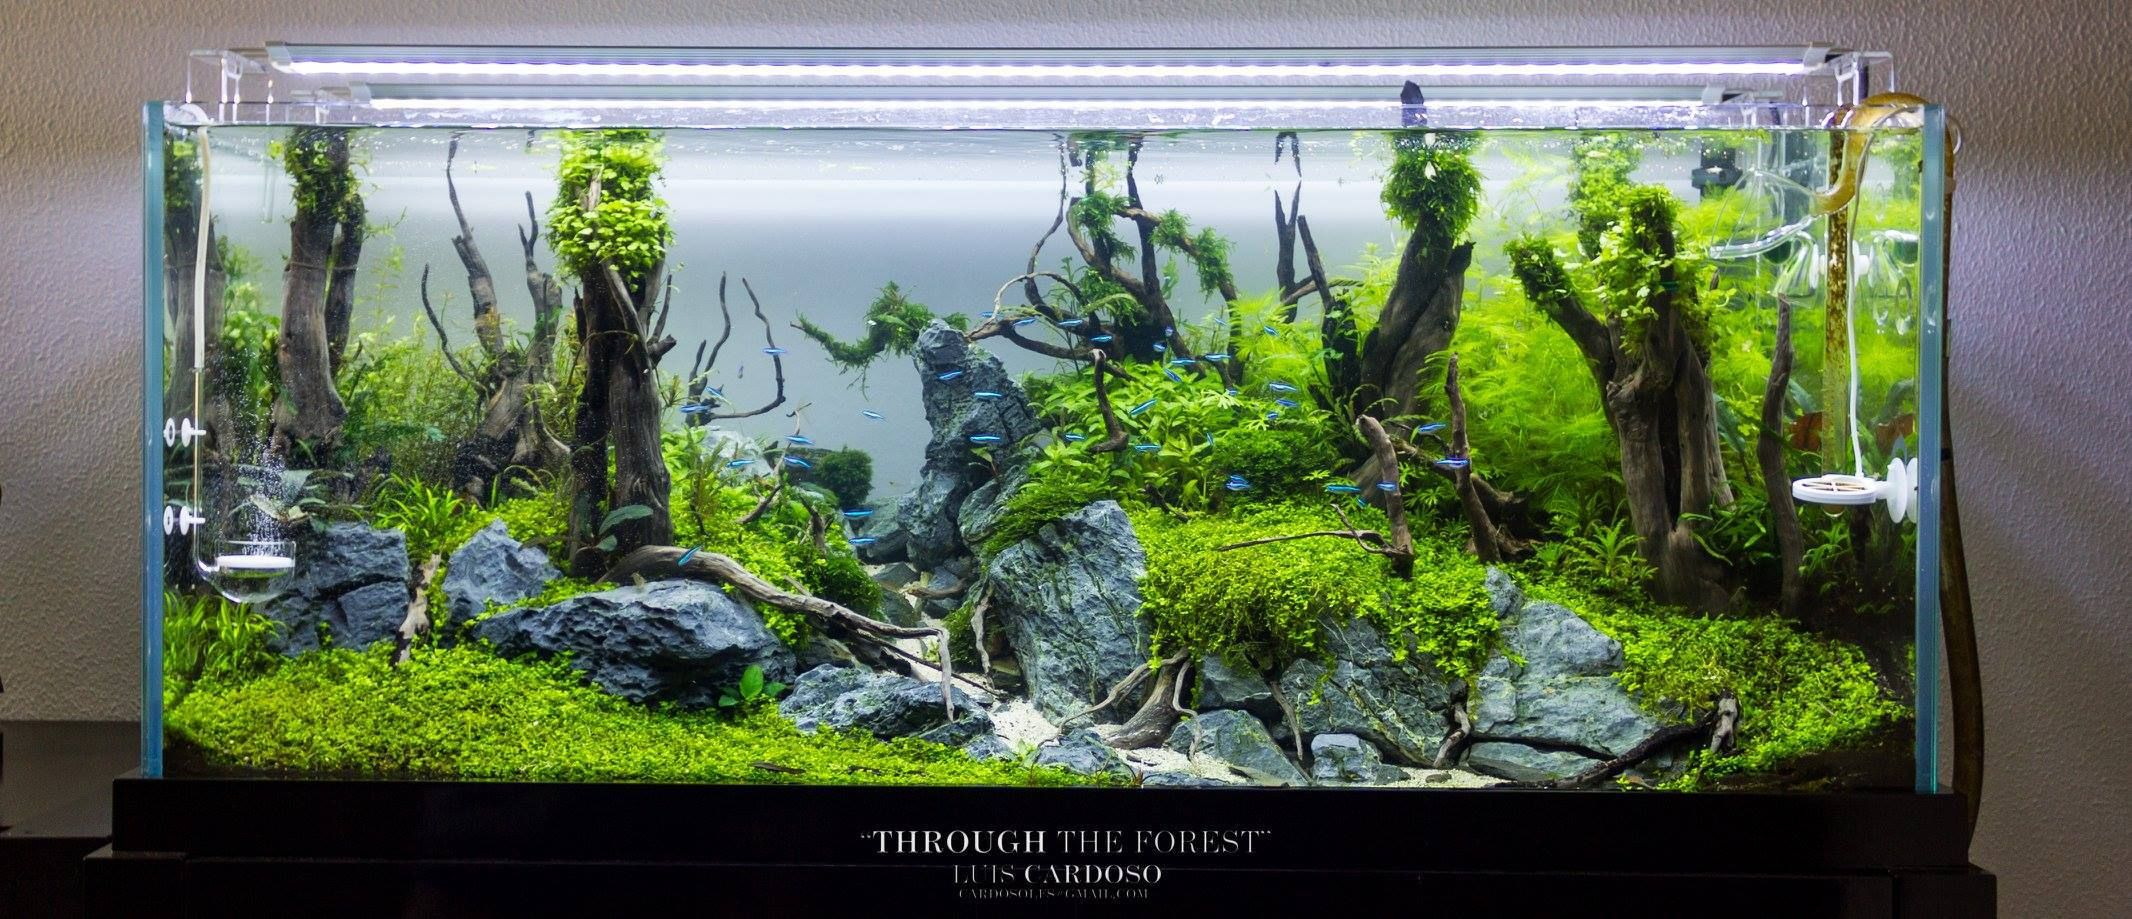 AQUASCAPE IDEA 6 | Aquascape, Live aquarium plants, Nature ...